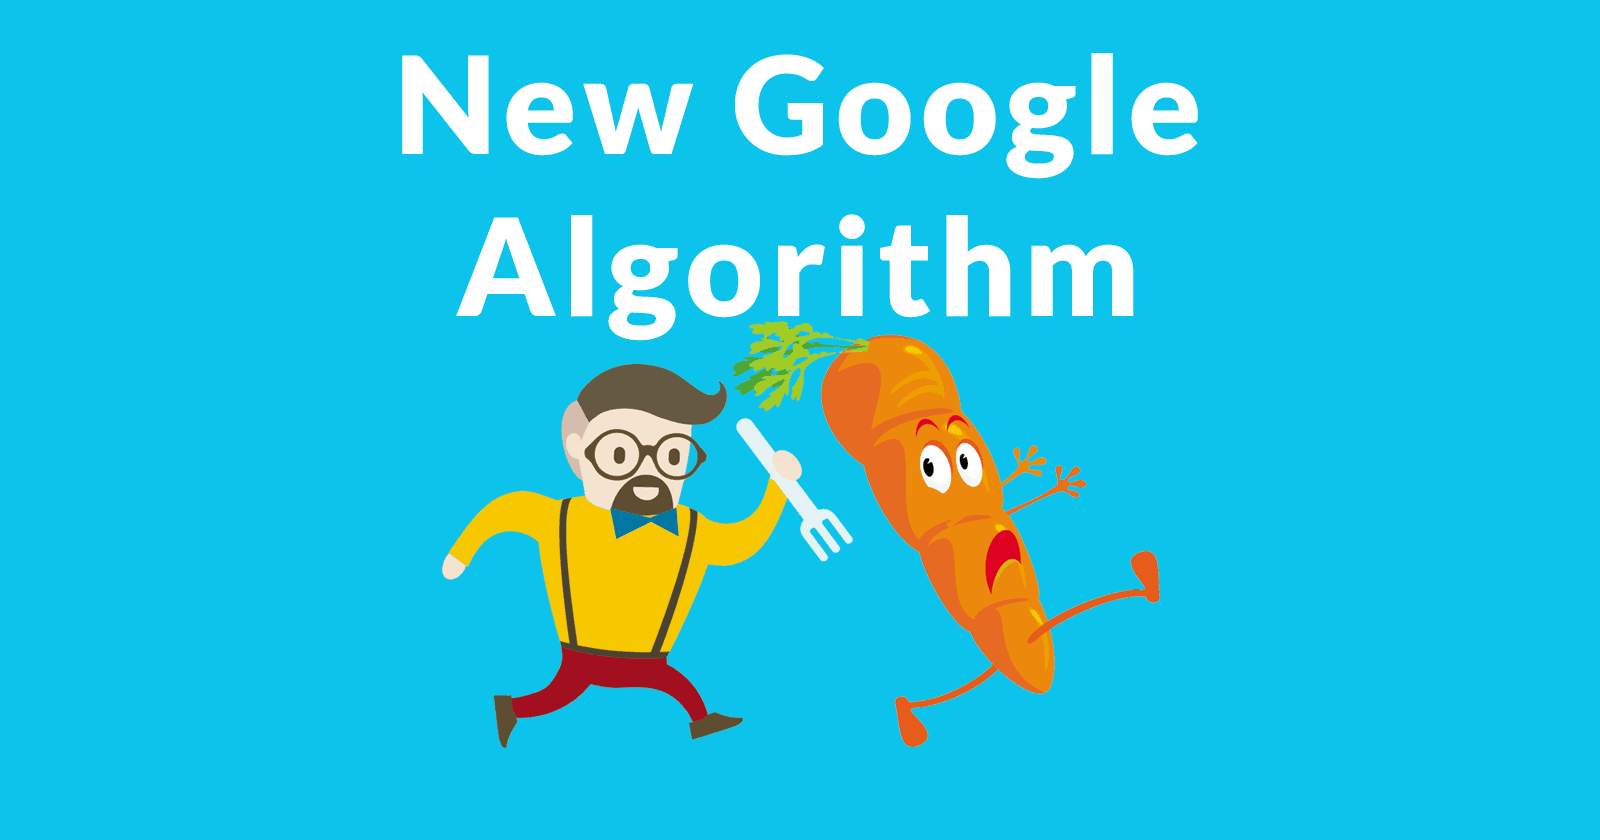 New Google Algorithm May Update Page Ranking - Search Engine Journal